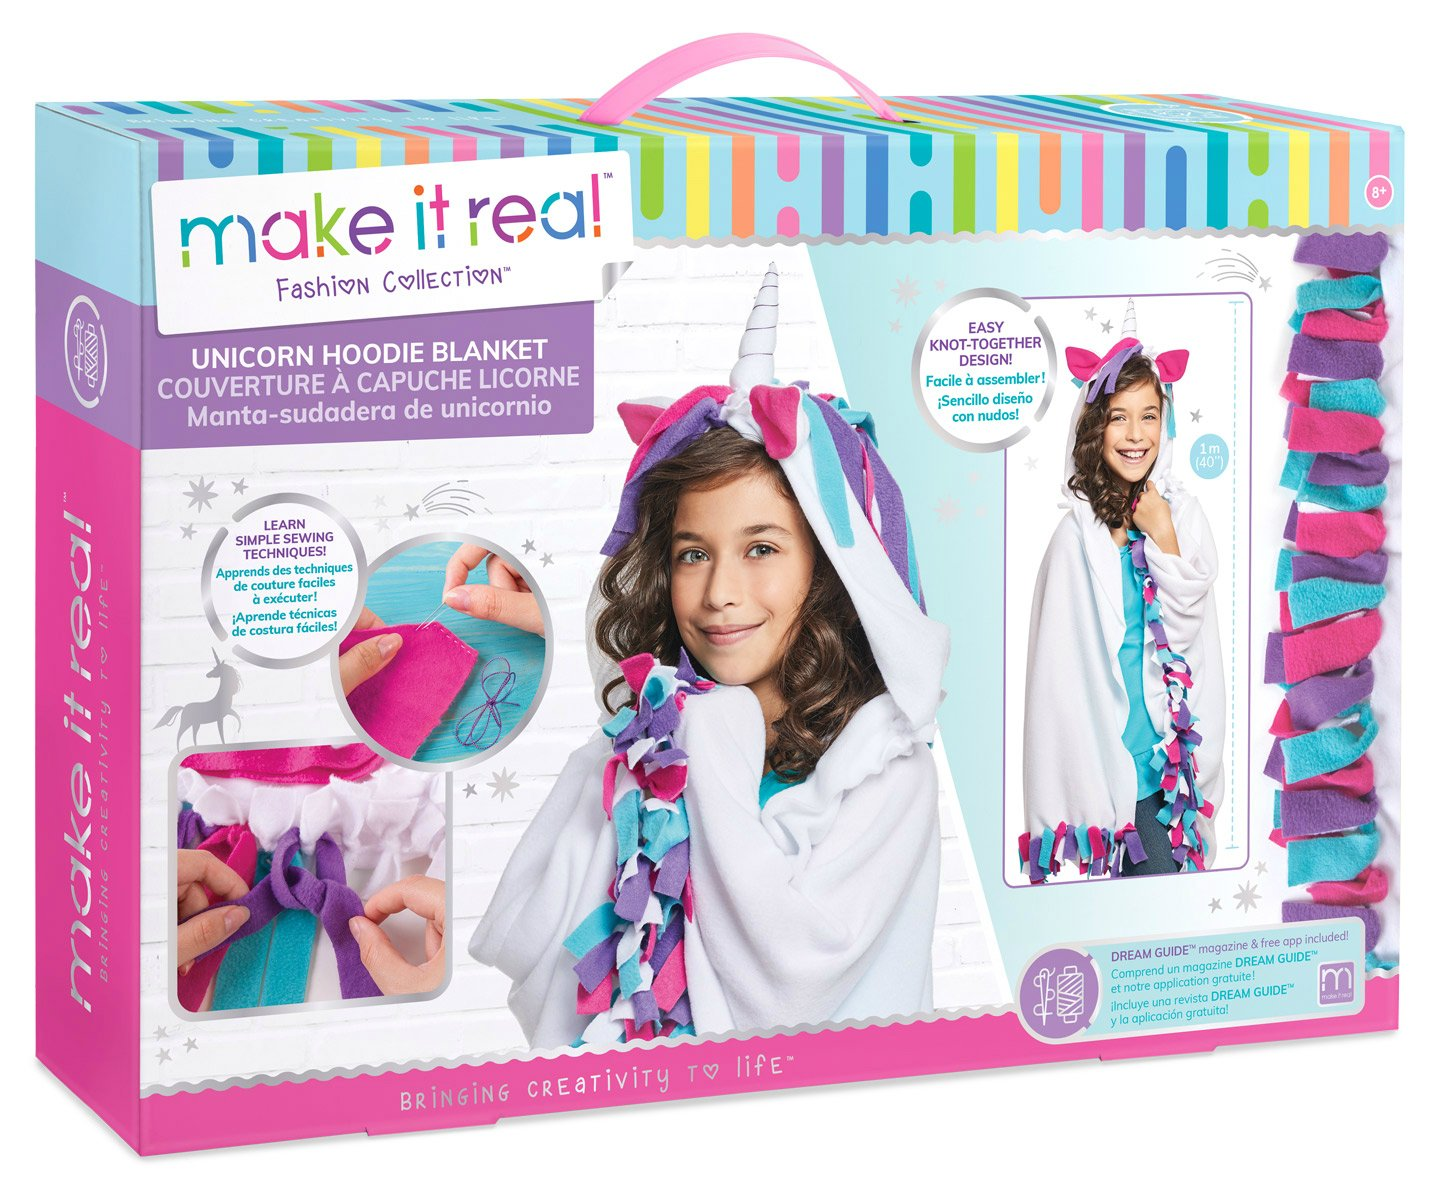 Make It Real Unicorn Hoodie Blanket. Wearable Unicorn Hooded Blanket Arts and Crafts Kit for Girls. DIY Kit Guides Tweens to Create Their Own Unicorn Hoodie Fleece Knotted Blanket